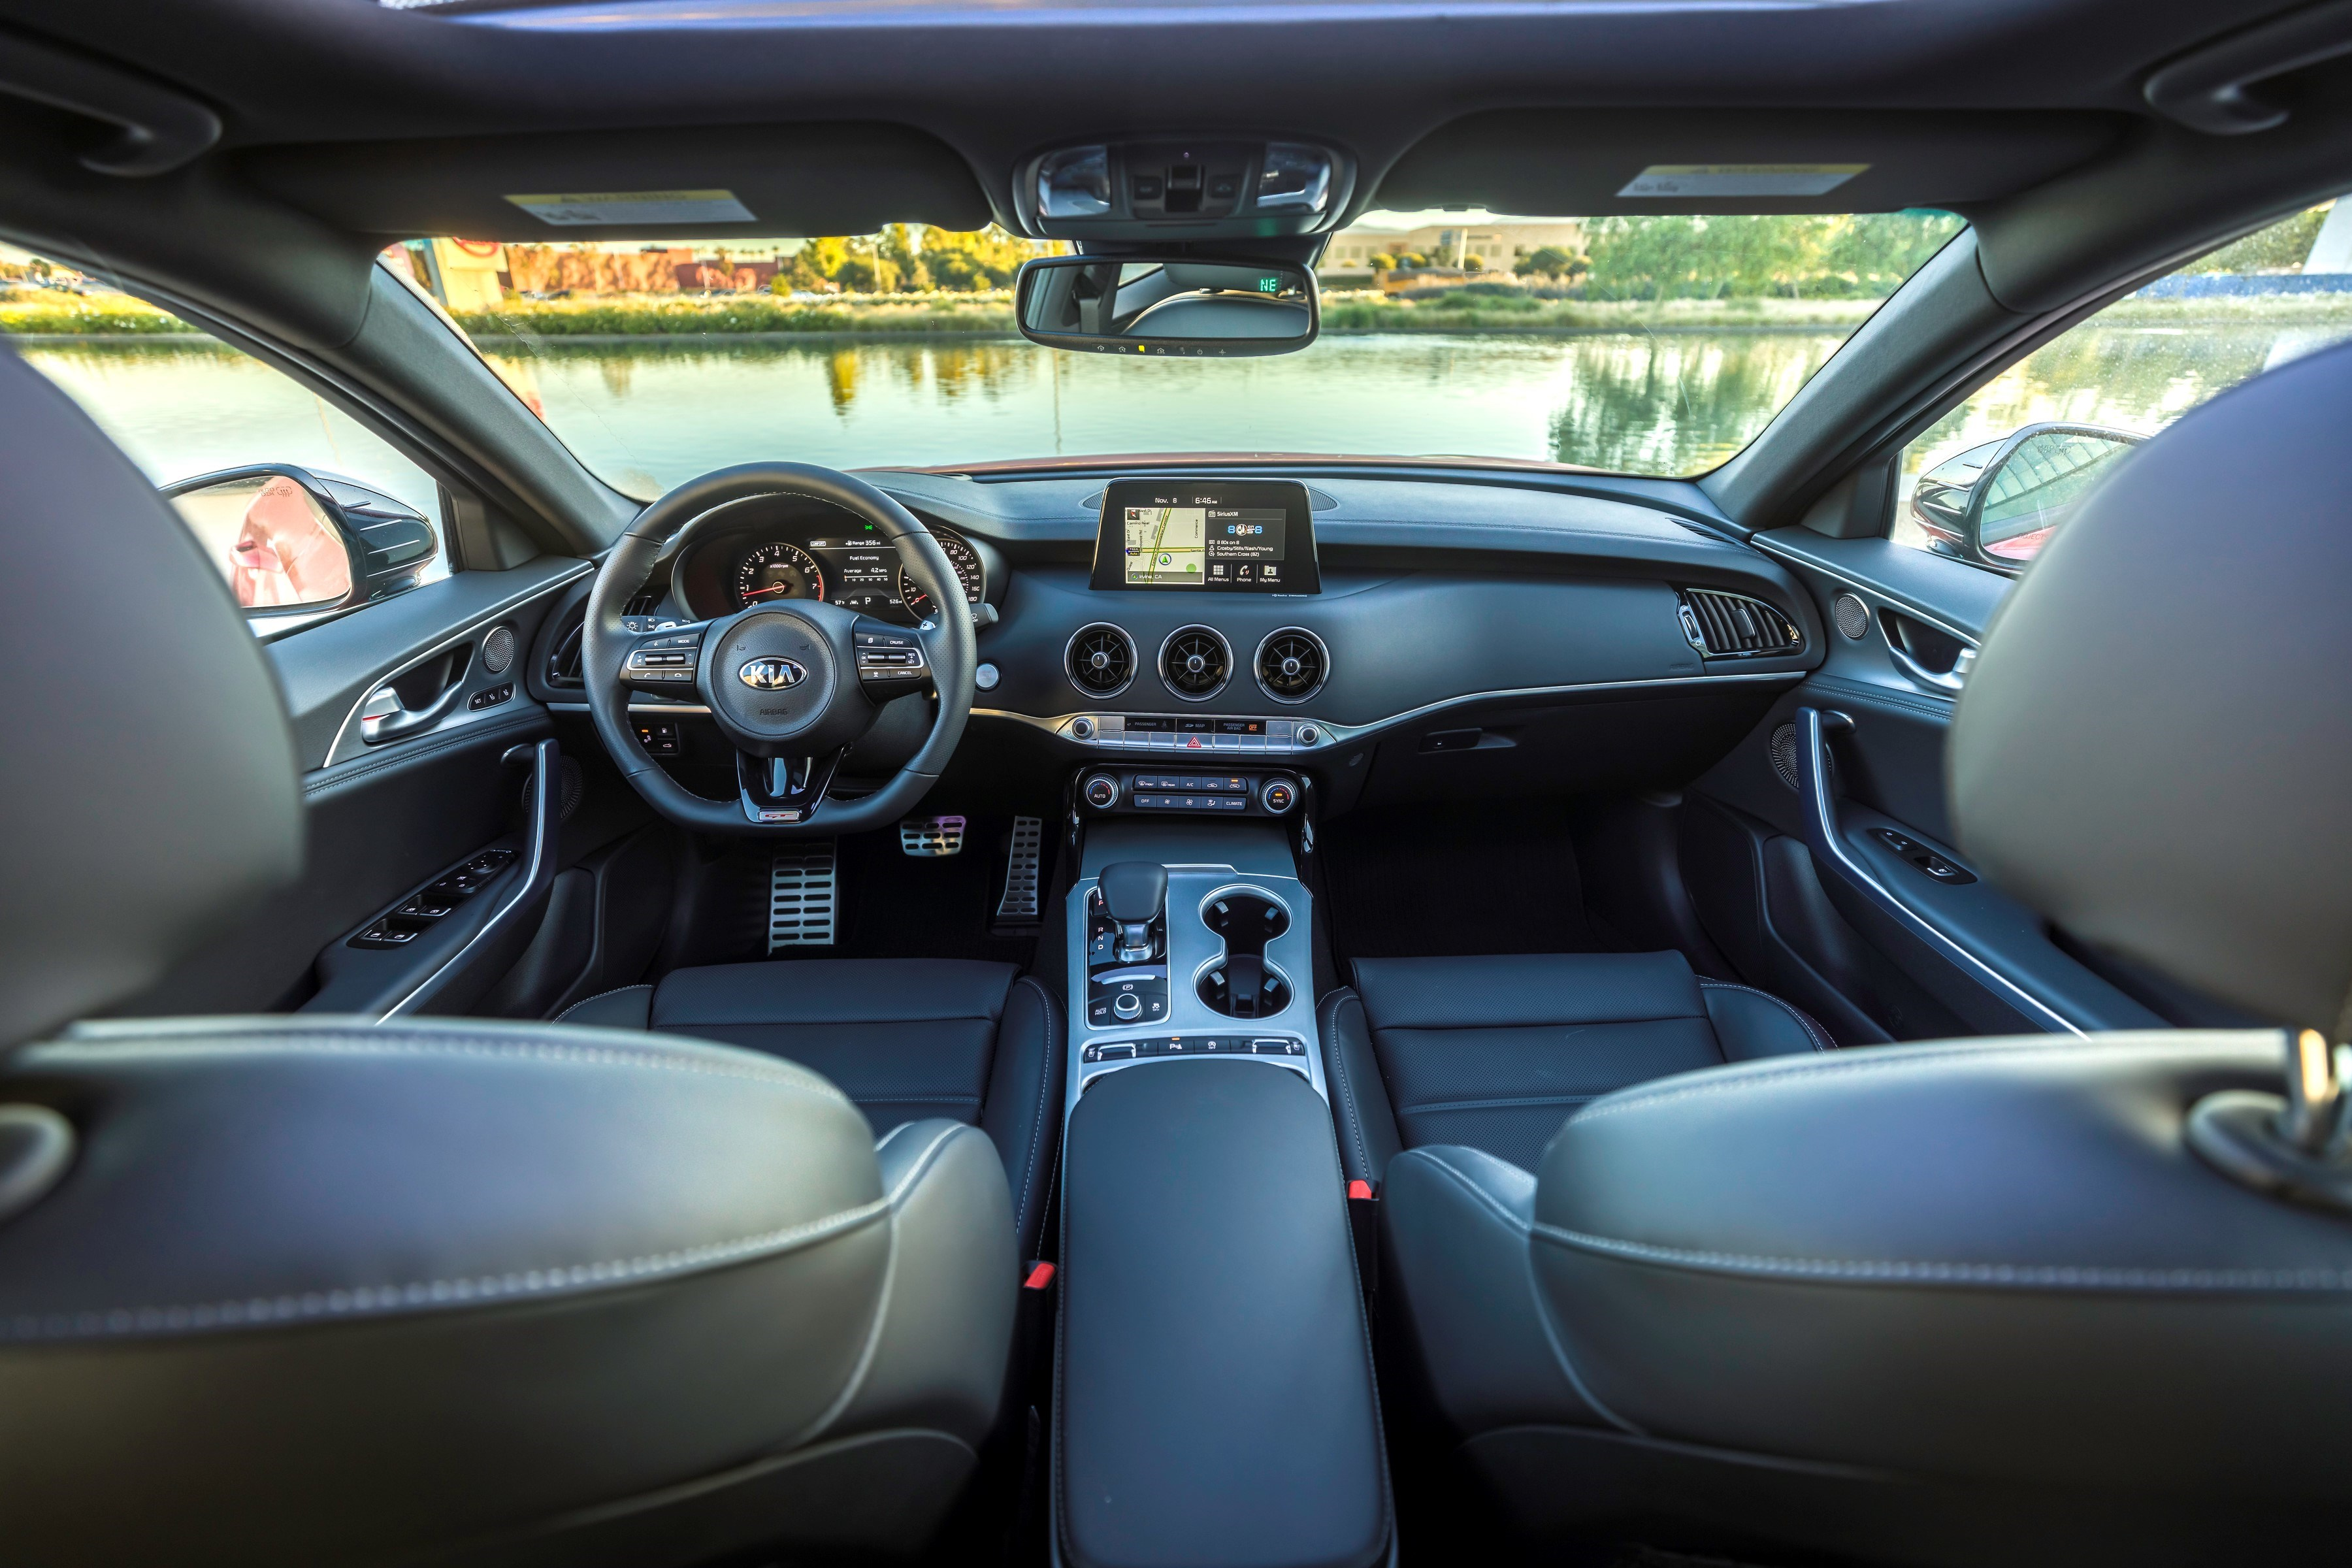 Kia did not just paste together its usual dashboard for the 2018 Stinger; its individuality should be a strong selling point.